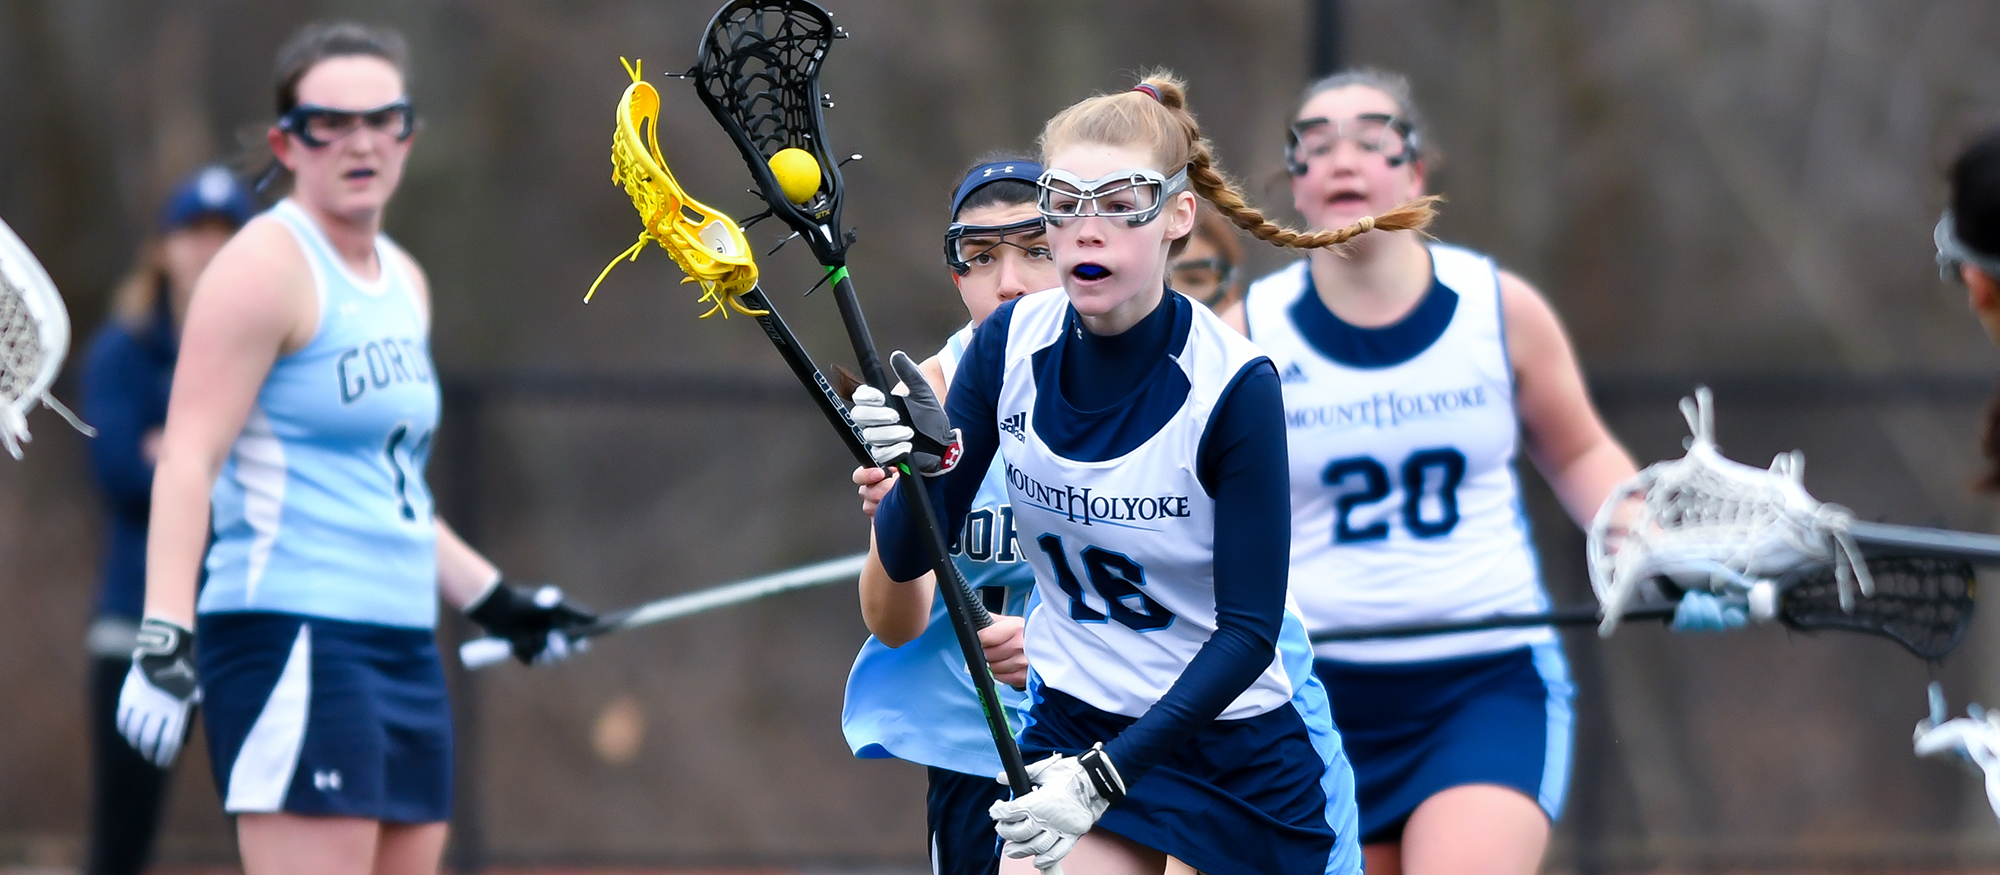 Action photo of Lyons lacrosse player, Haley Subocz.